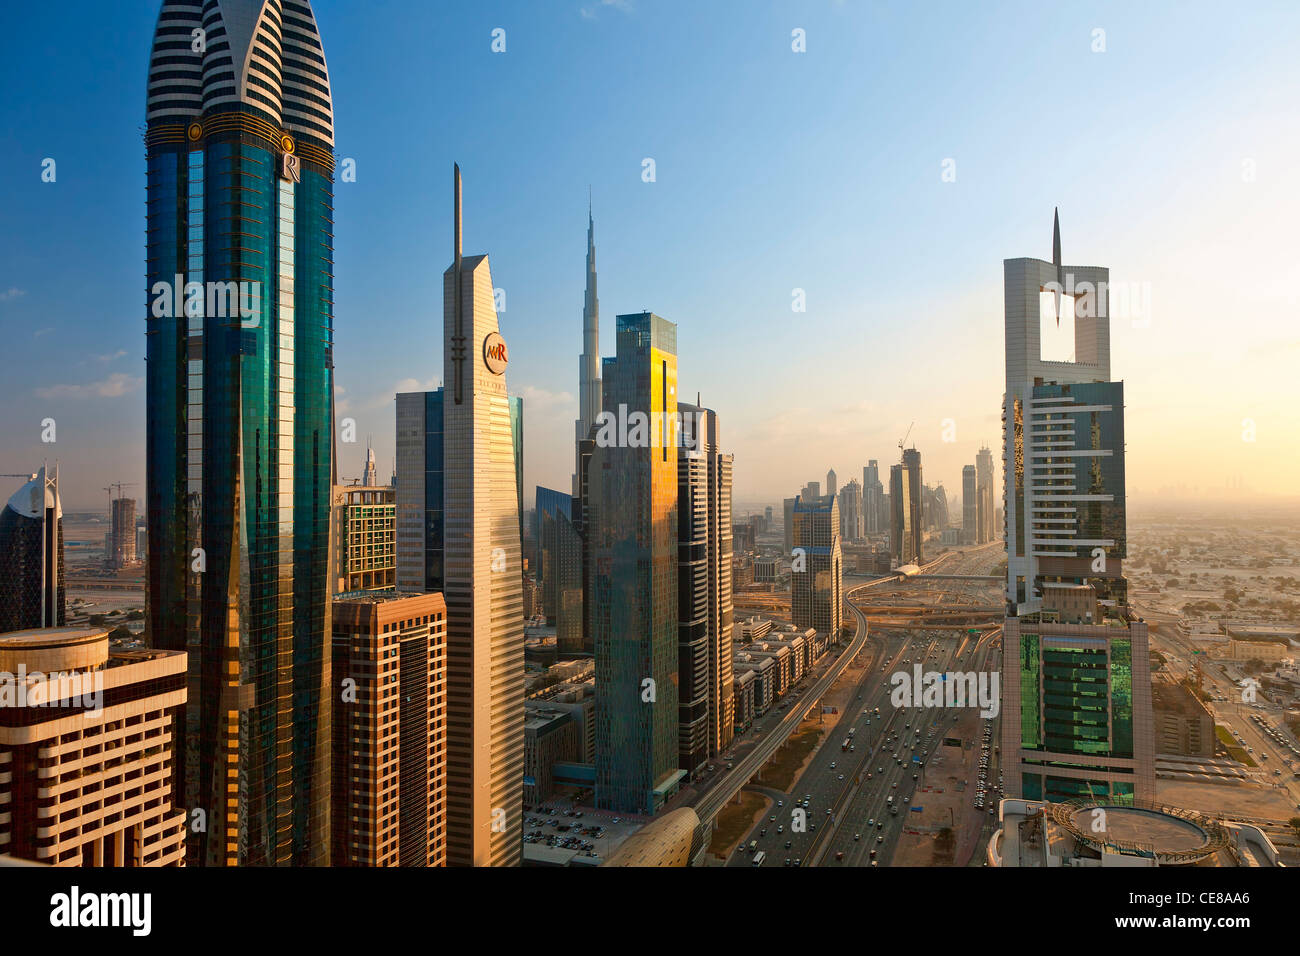 Dubai, Towering office and apartment towers along Sheikh Zayed Road - Stock Image